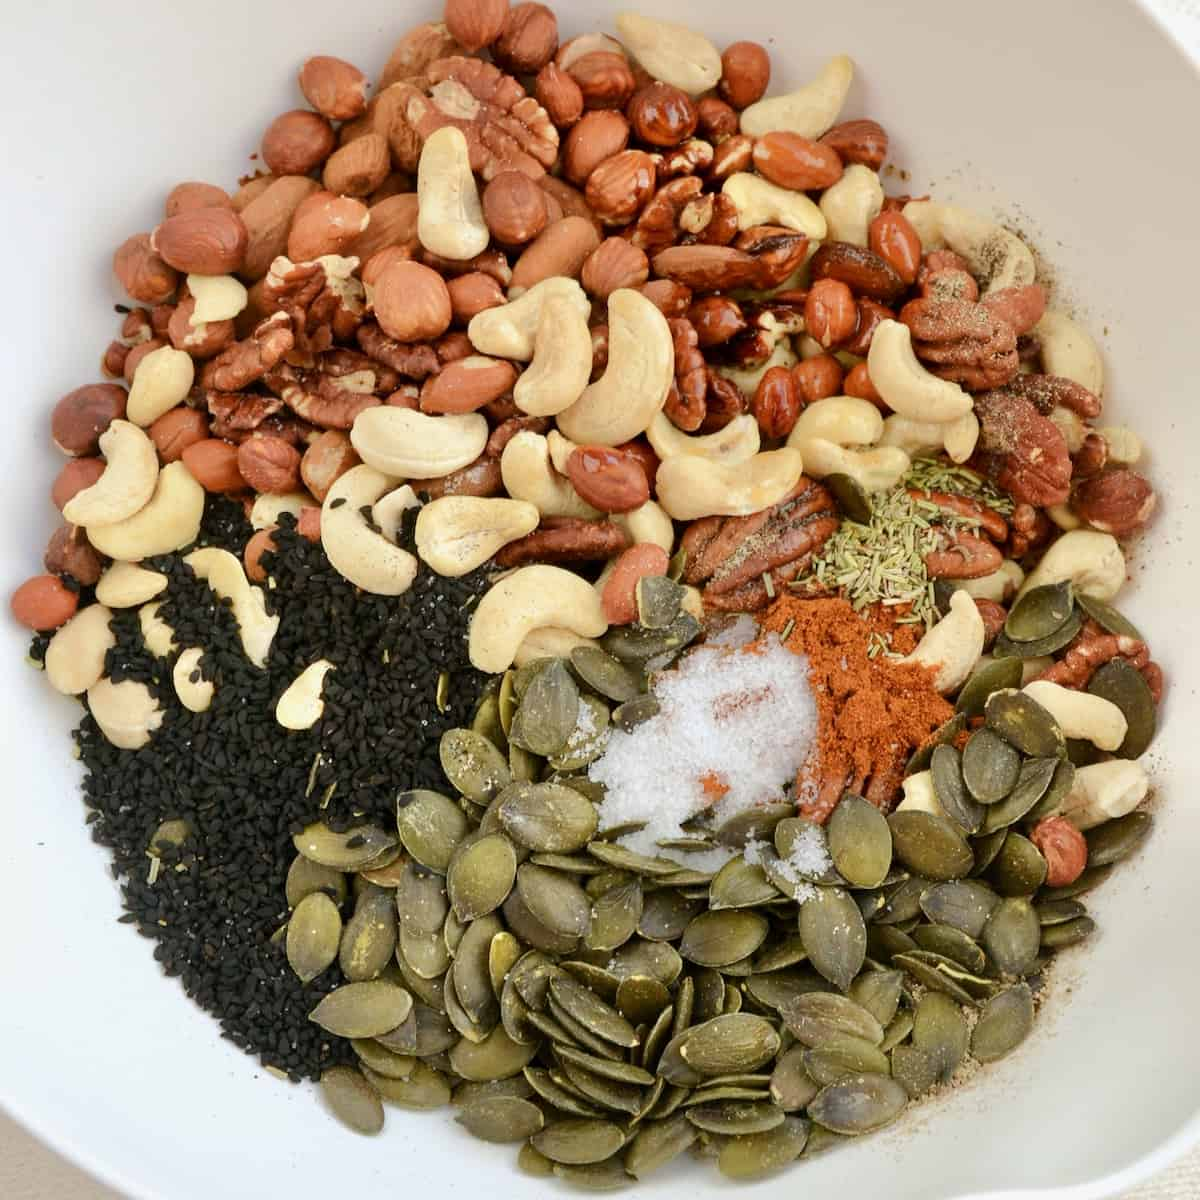 Nuts, seeds and seasonings in a white mixing bowl.